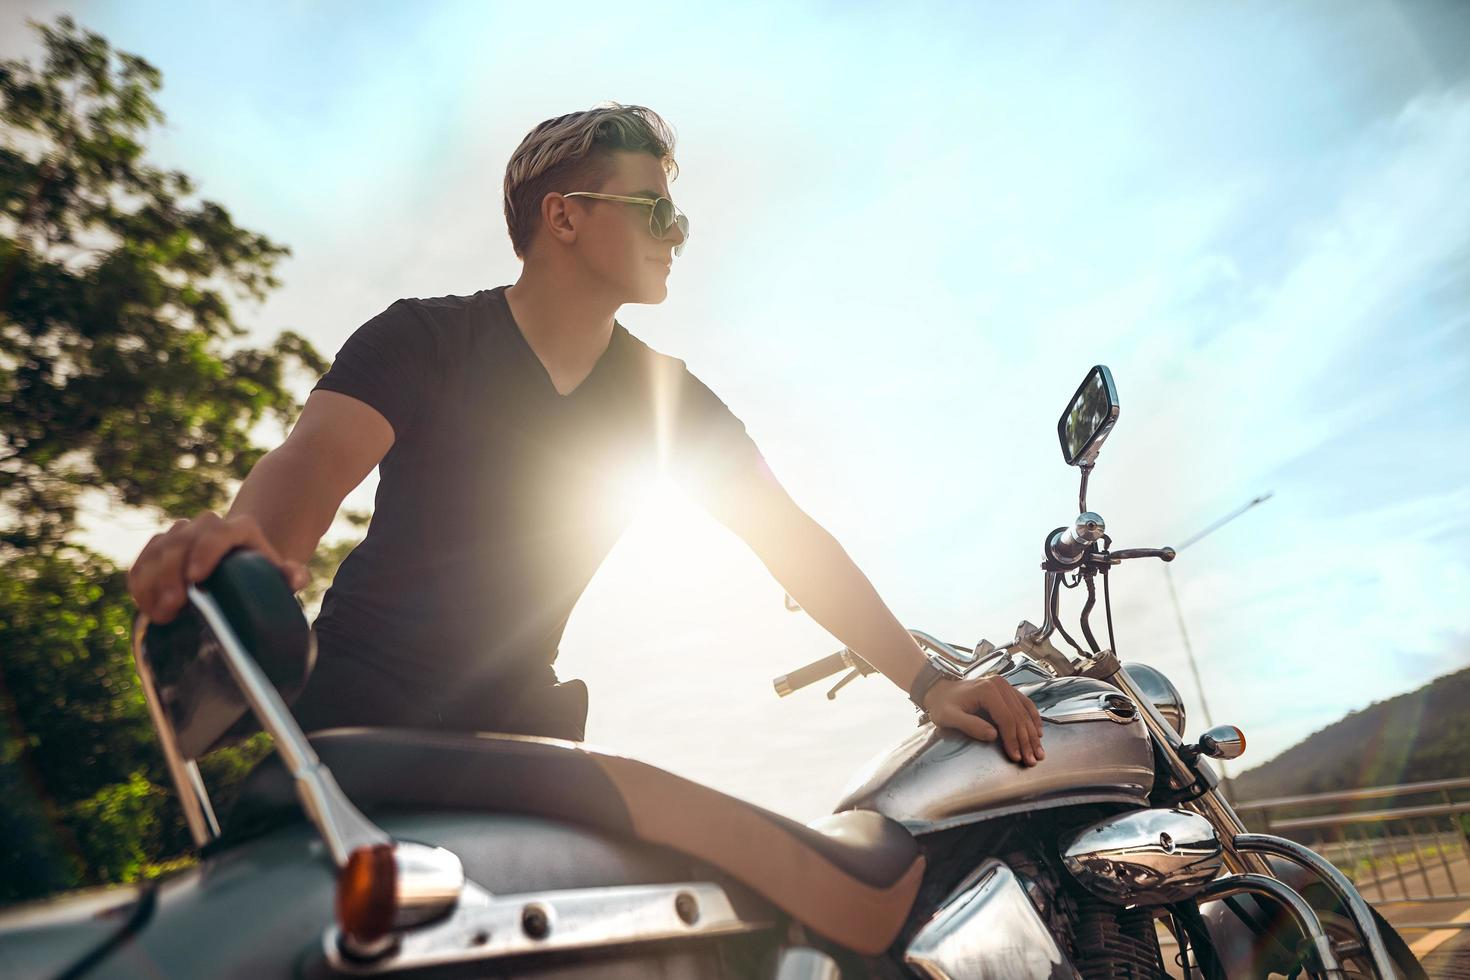 Motorcyclist stands next to bike, backlit by sun photo